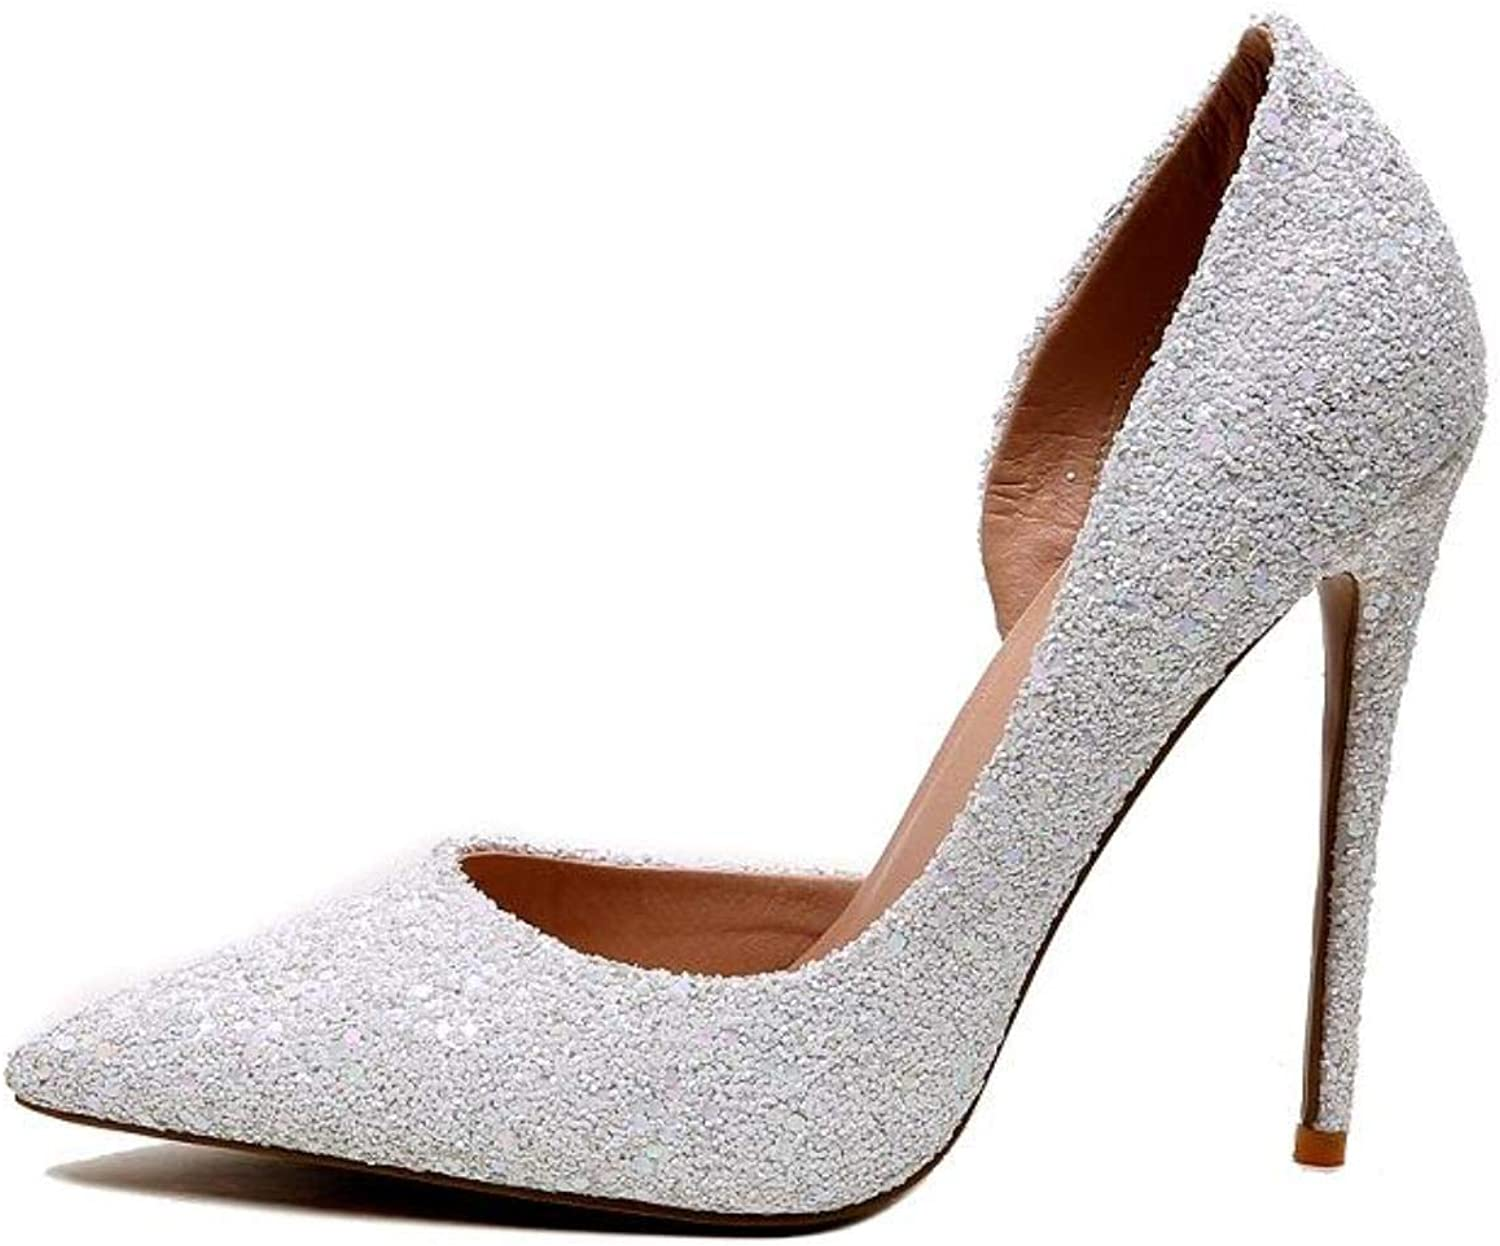 High Heels Slip-on Stiletto Sequined Cloth Wedding shoes For Woman